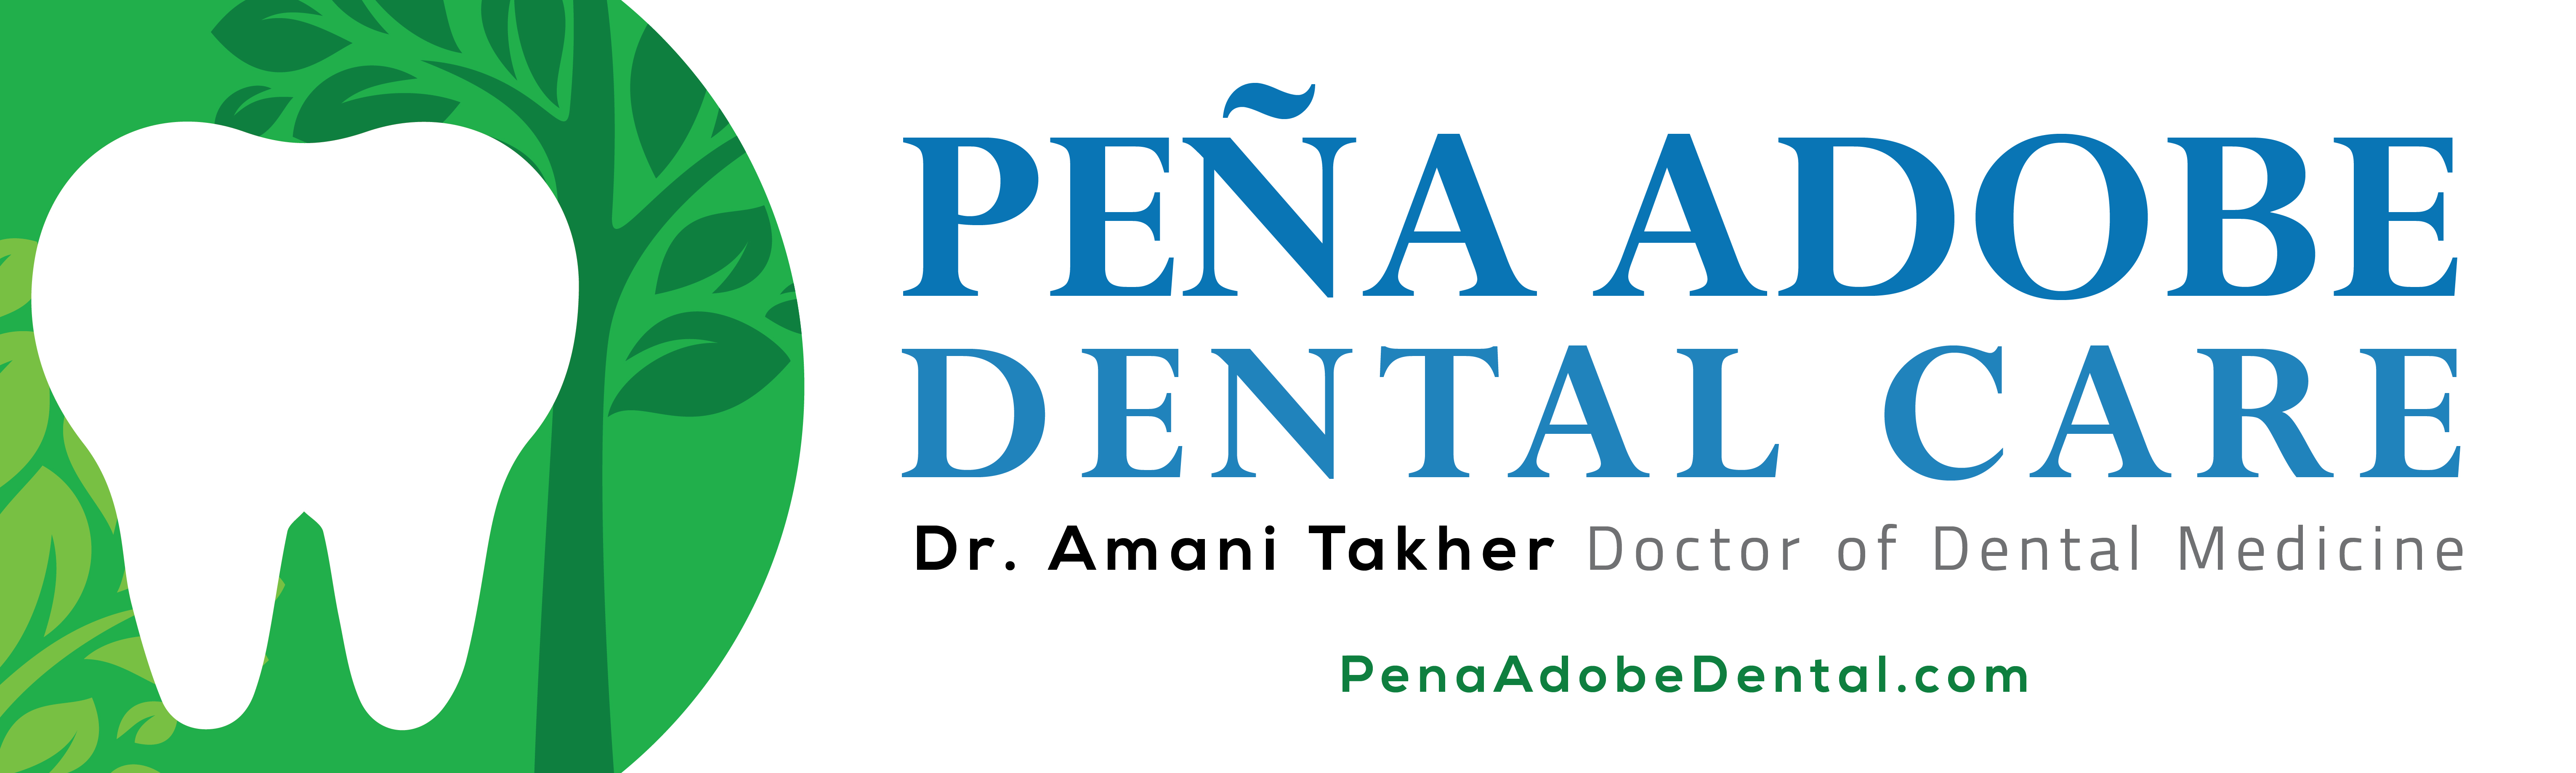 Pena Adobe Dental Care